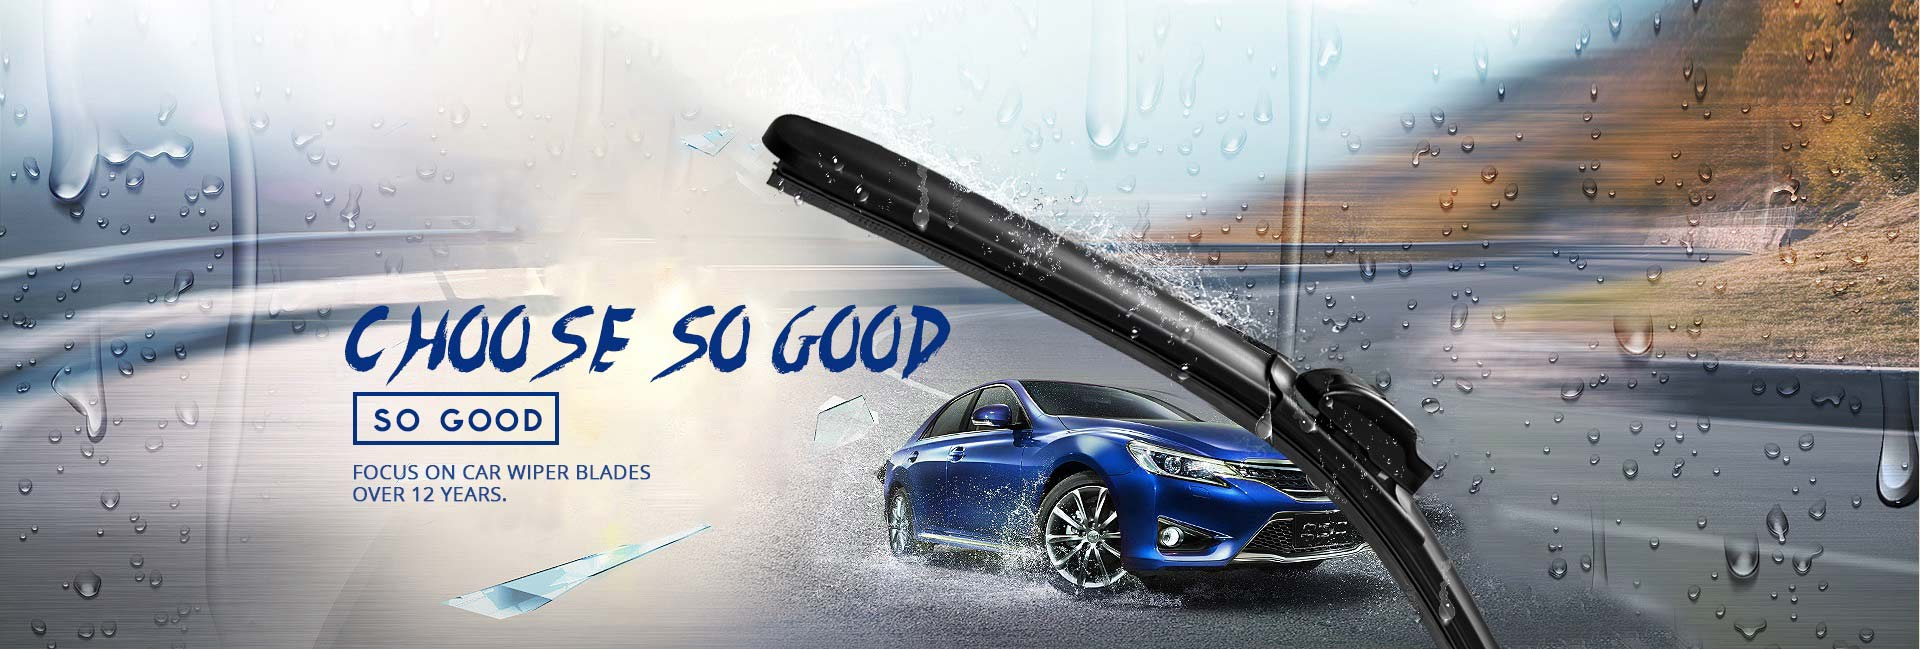 wholesale wiper blades